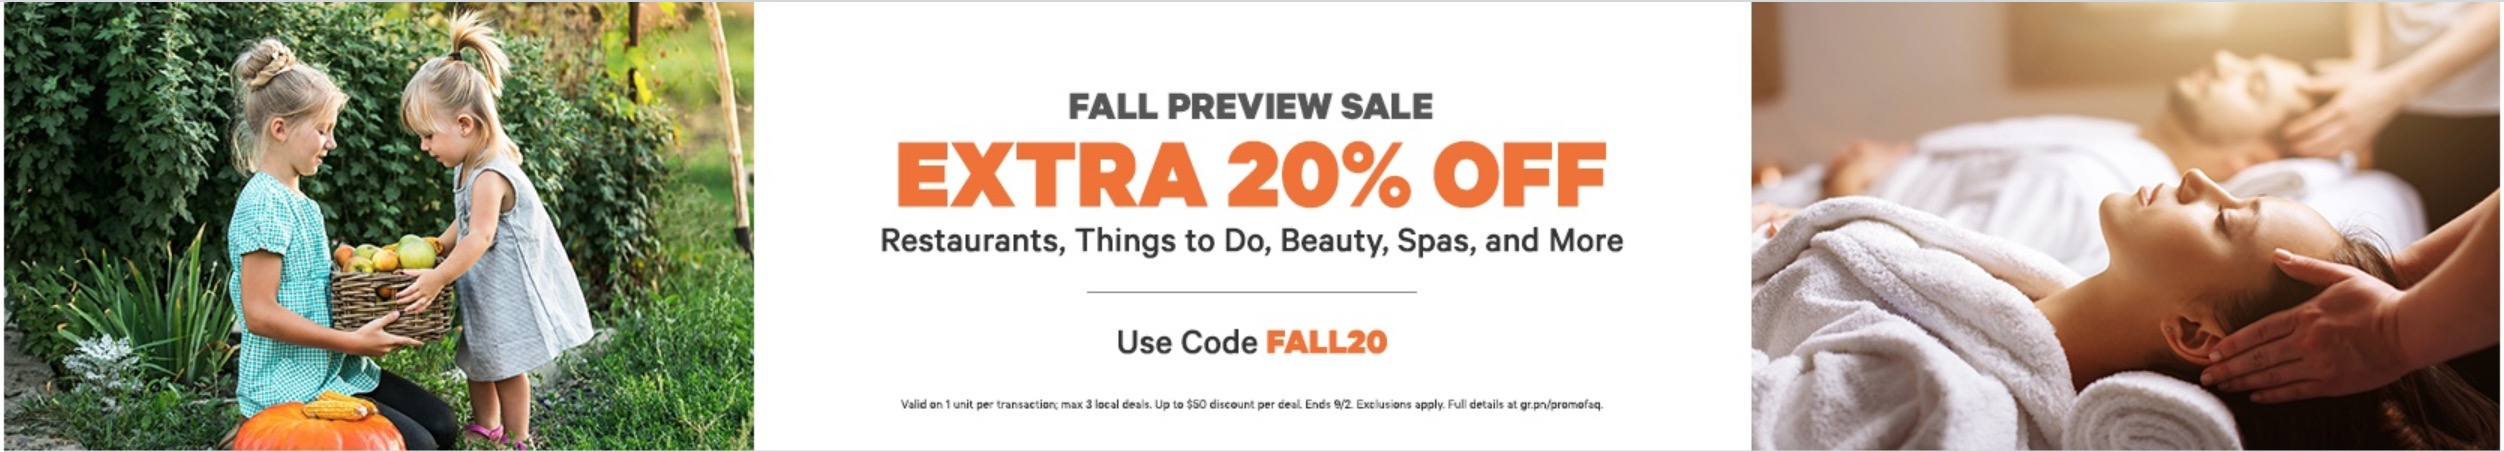 ac64c5b7c9a9 Groupon Canada has a new Fall Preview Sale available now where you can save  an extra 20% off Restaurants